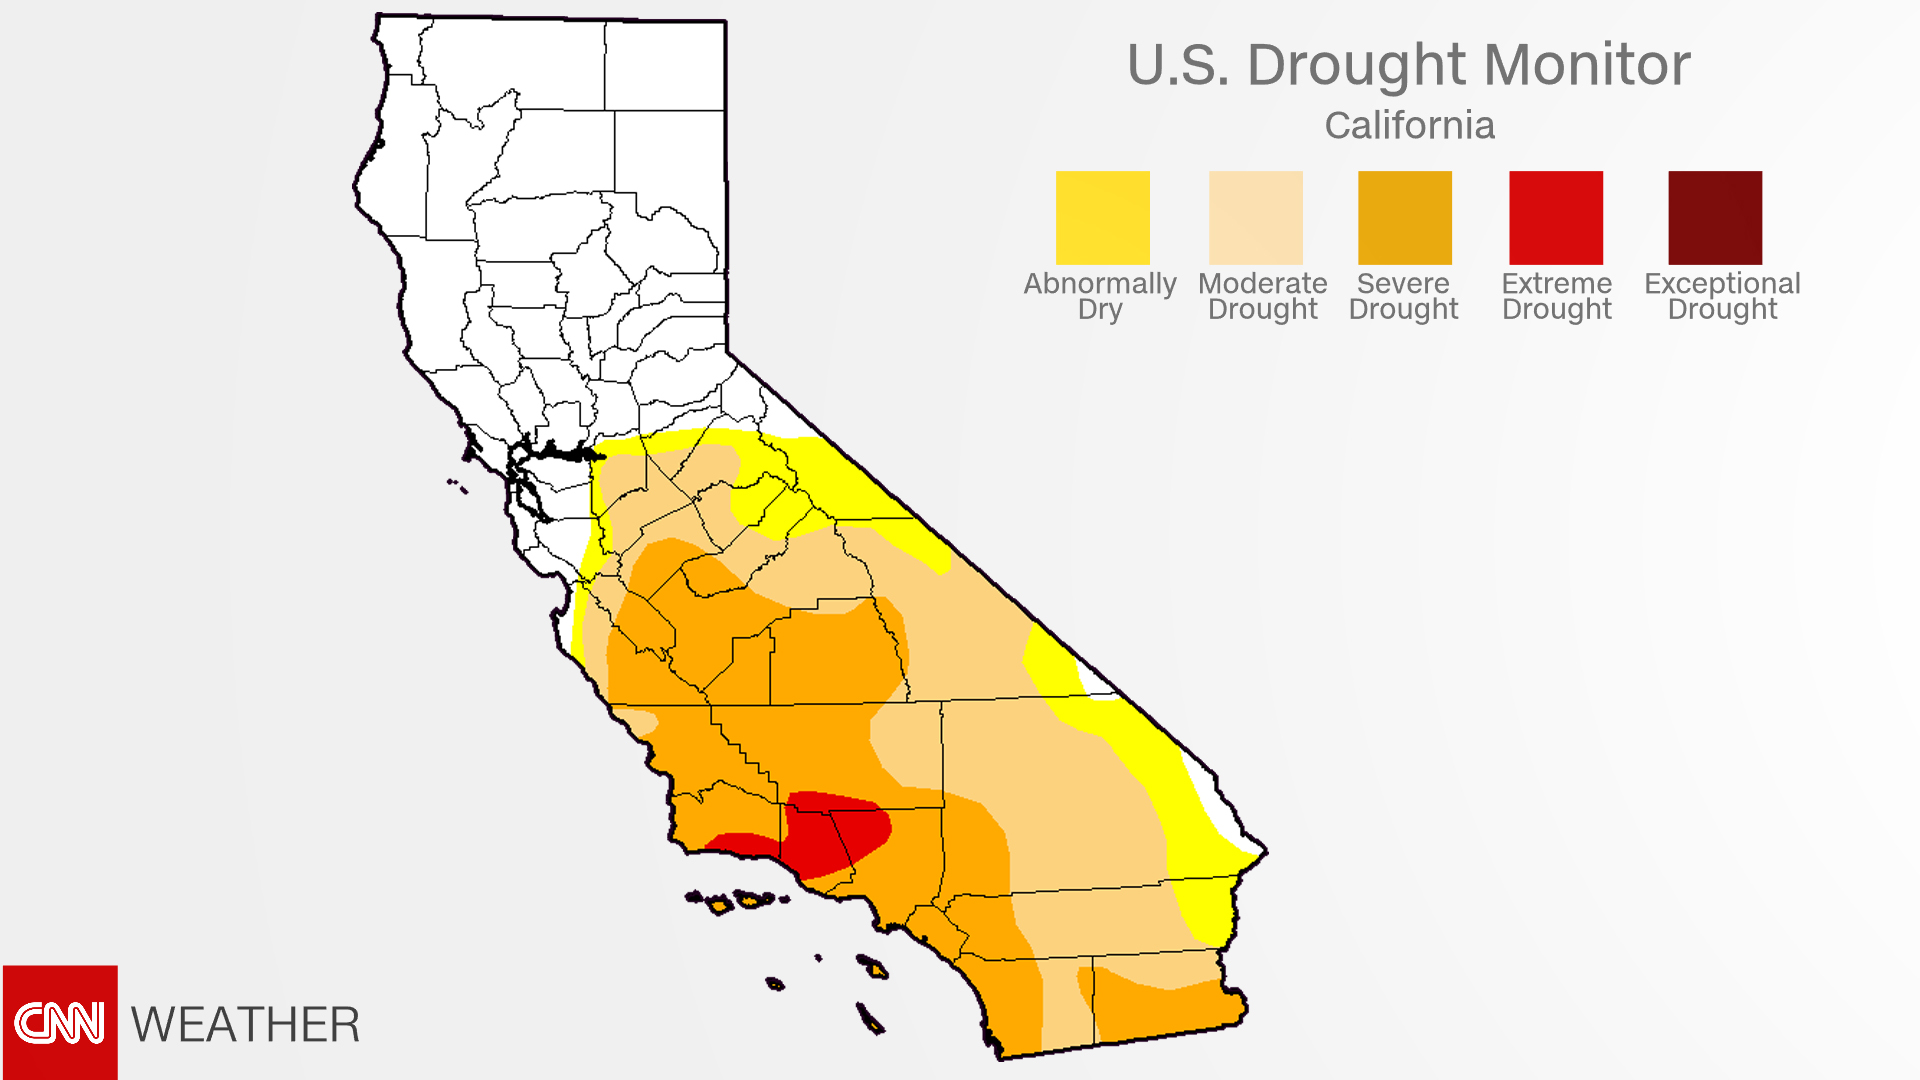 California drought: Recent rains have almost ended it - CNN